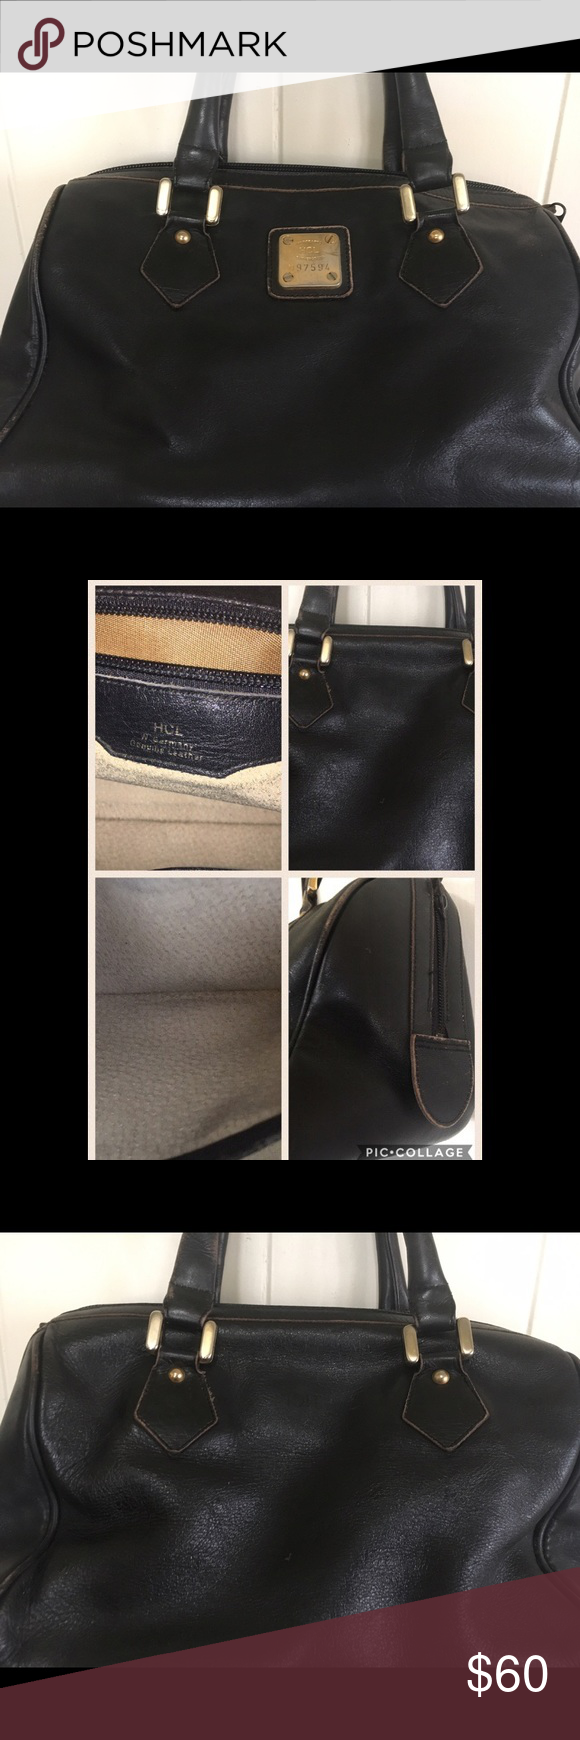 Vintage Used But Clean Authentic Hcl Handbag As Is In Photo Black Leather Corners Show Wear However Very Durable